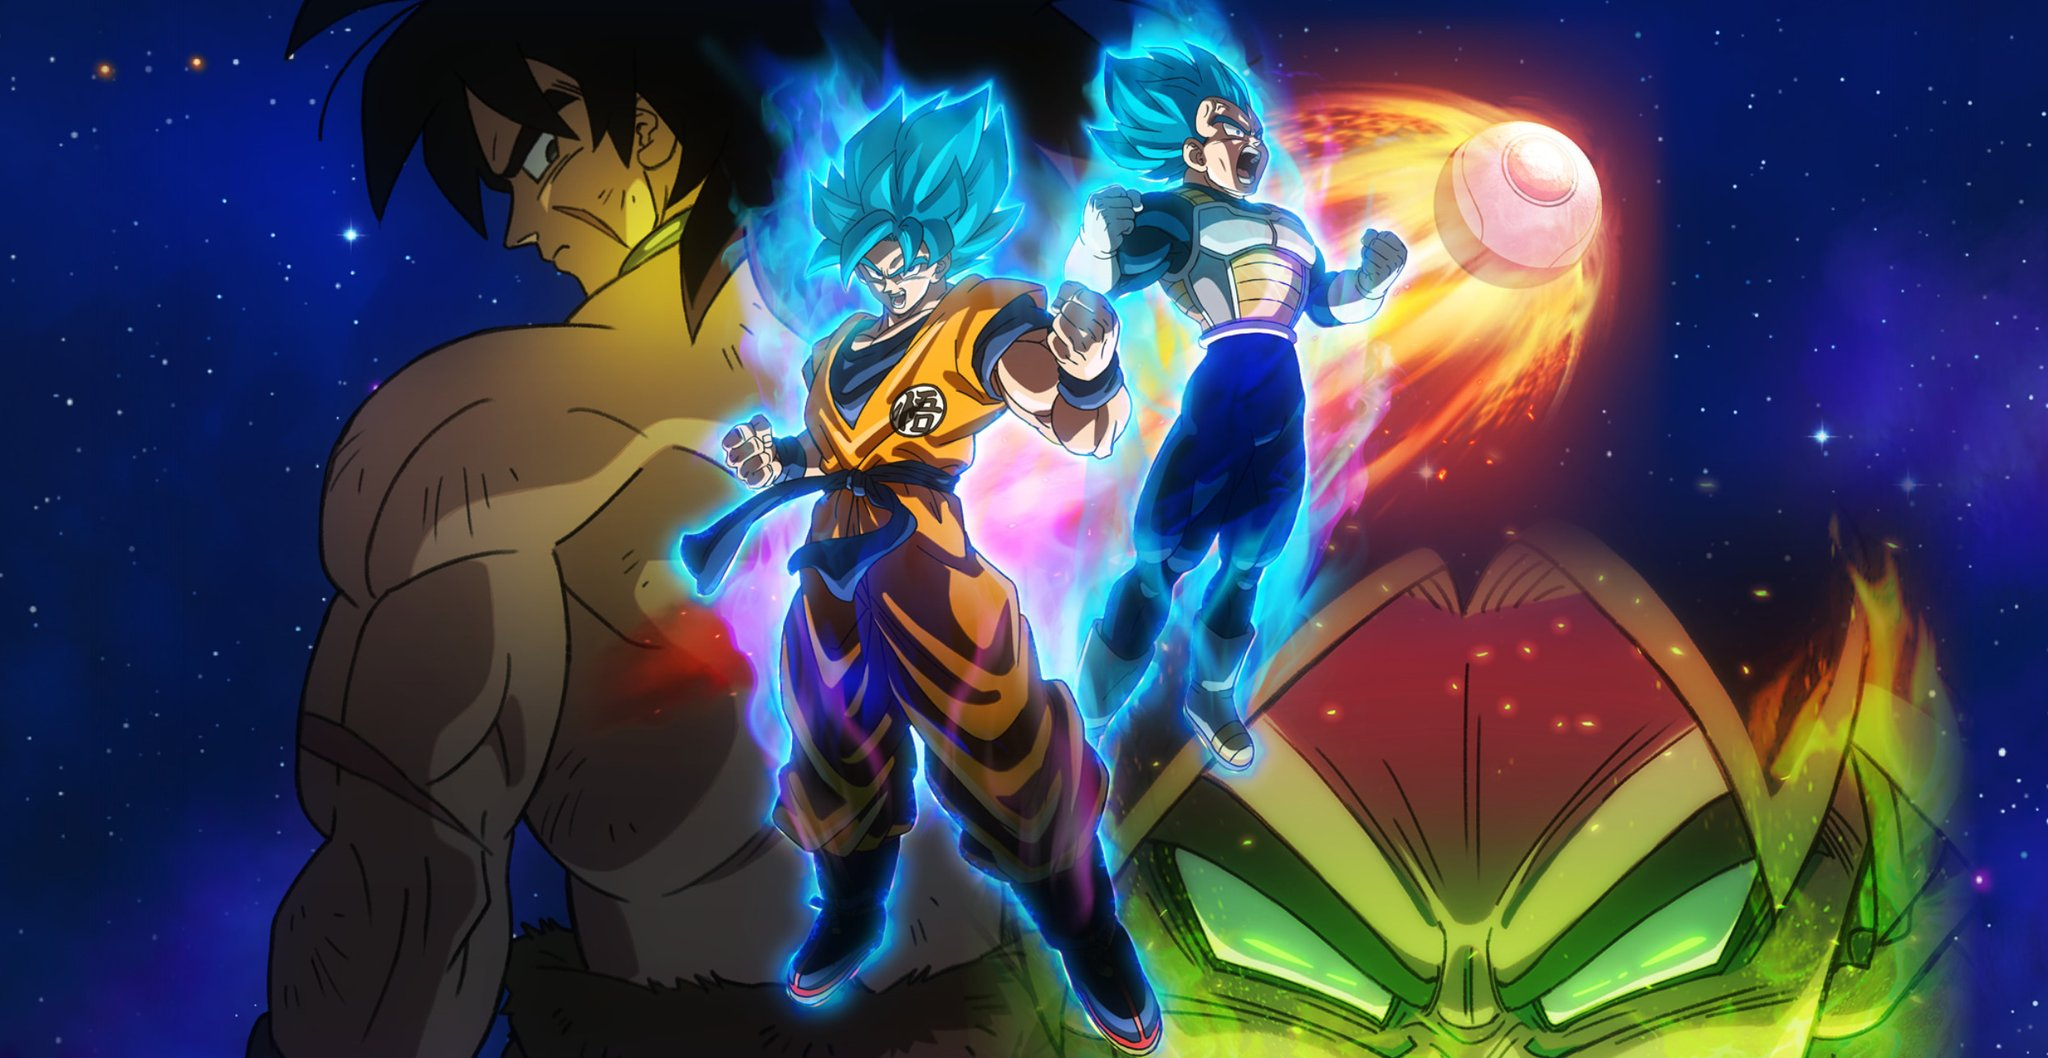 Dragon Ball Super The Movie 2018 Broly